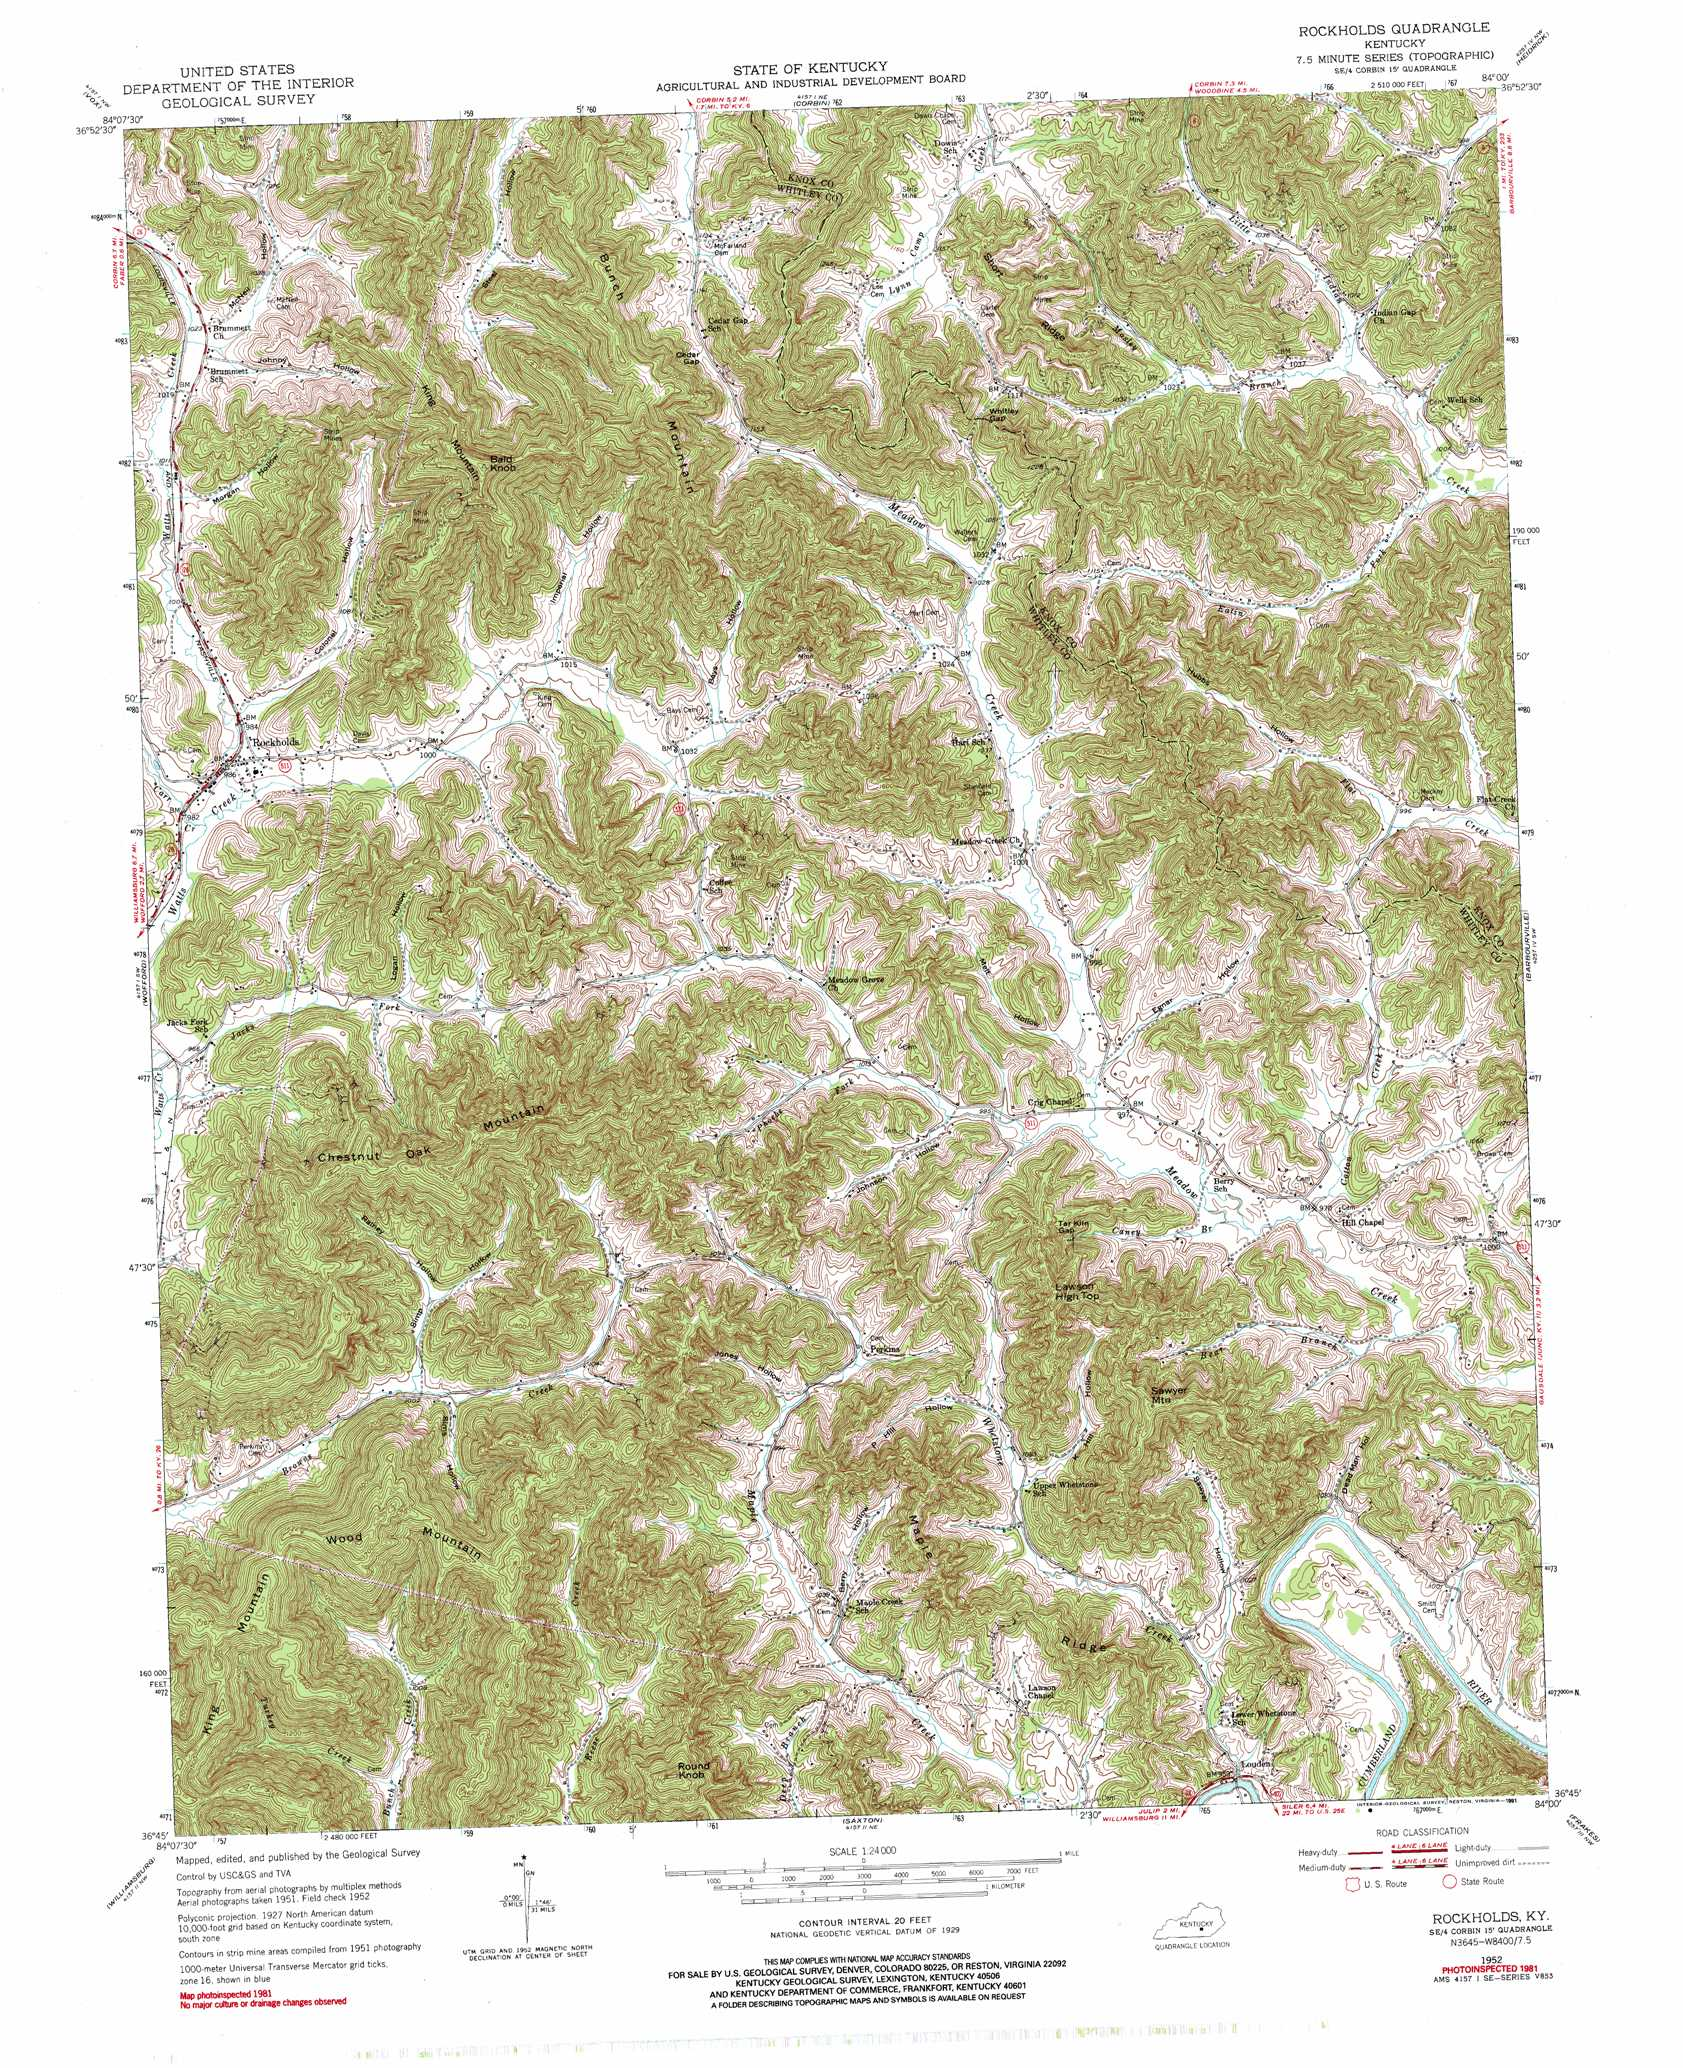 Rockholds Topographic Map KY  USGS Topo Quad 36084g1